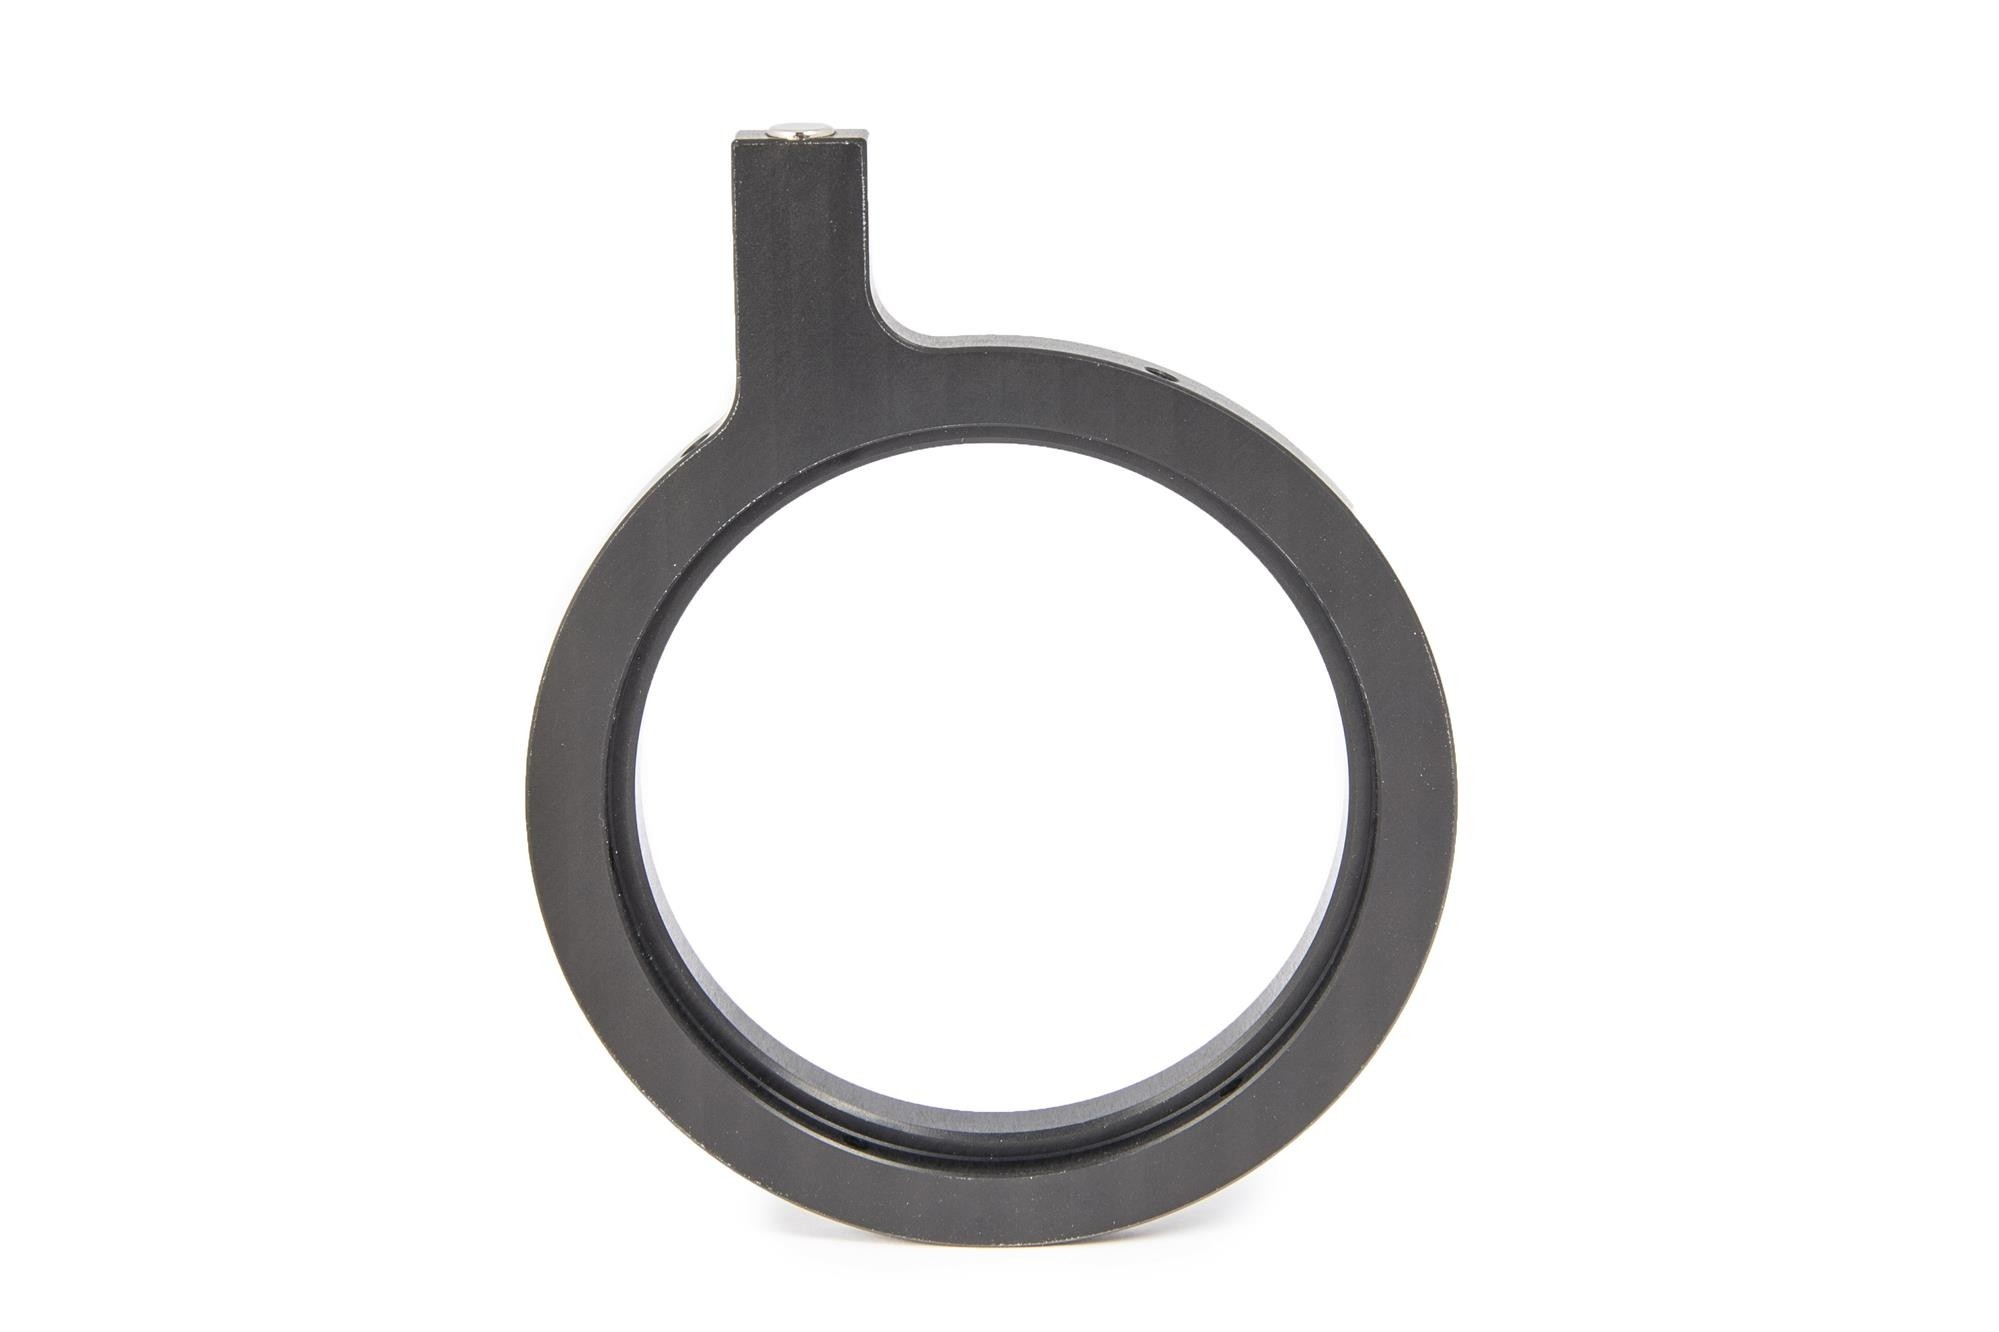 Metal Magnet Ring for Homing Sensor (Steeldrive II)